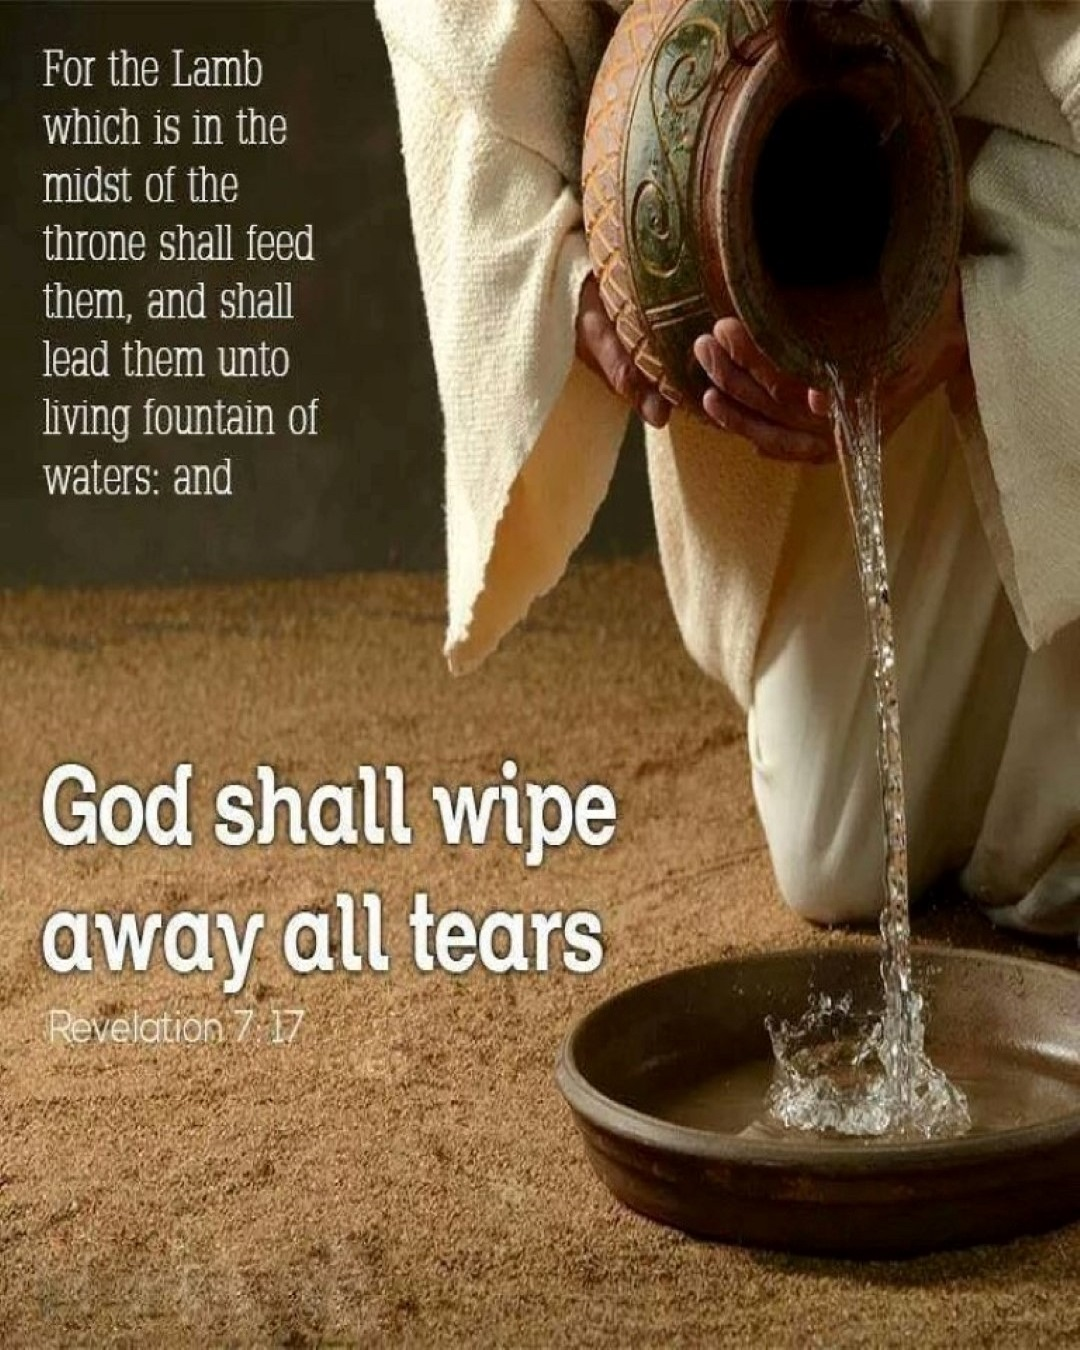 God shall wipe away all tears